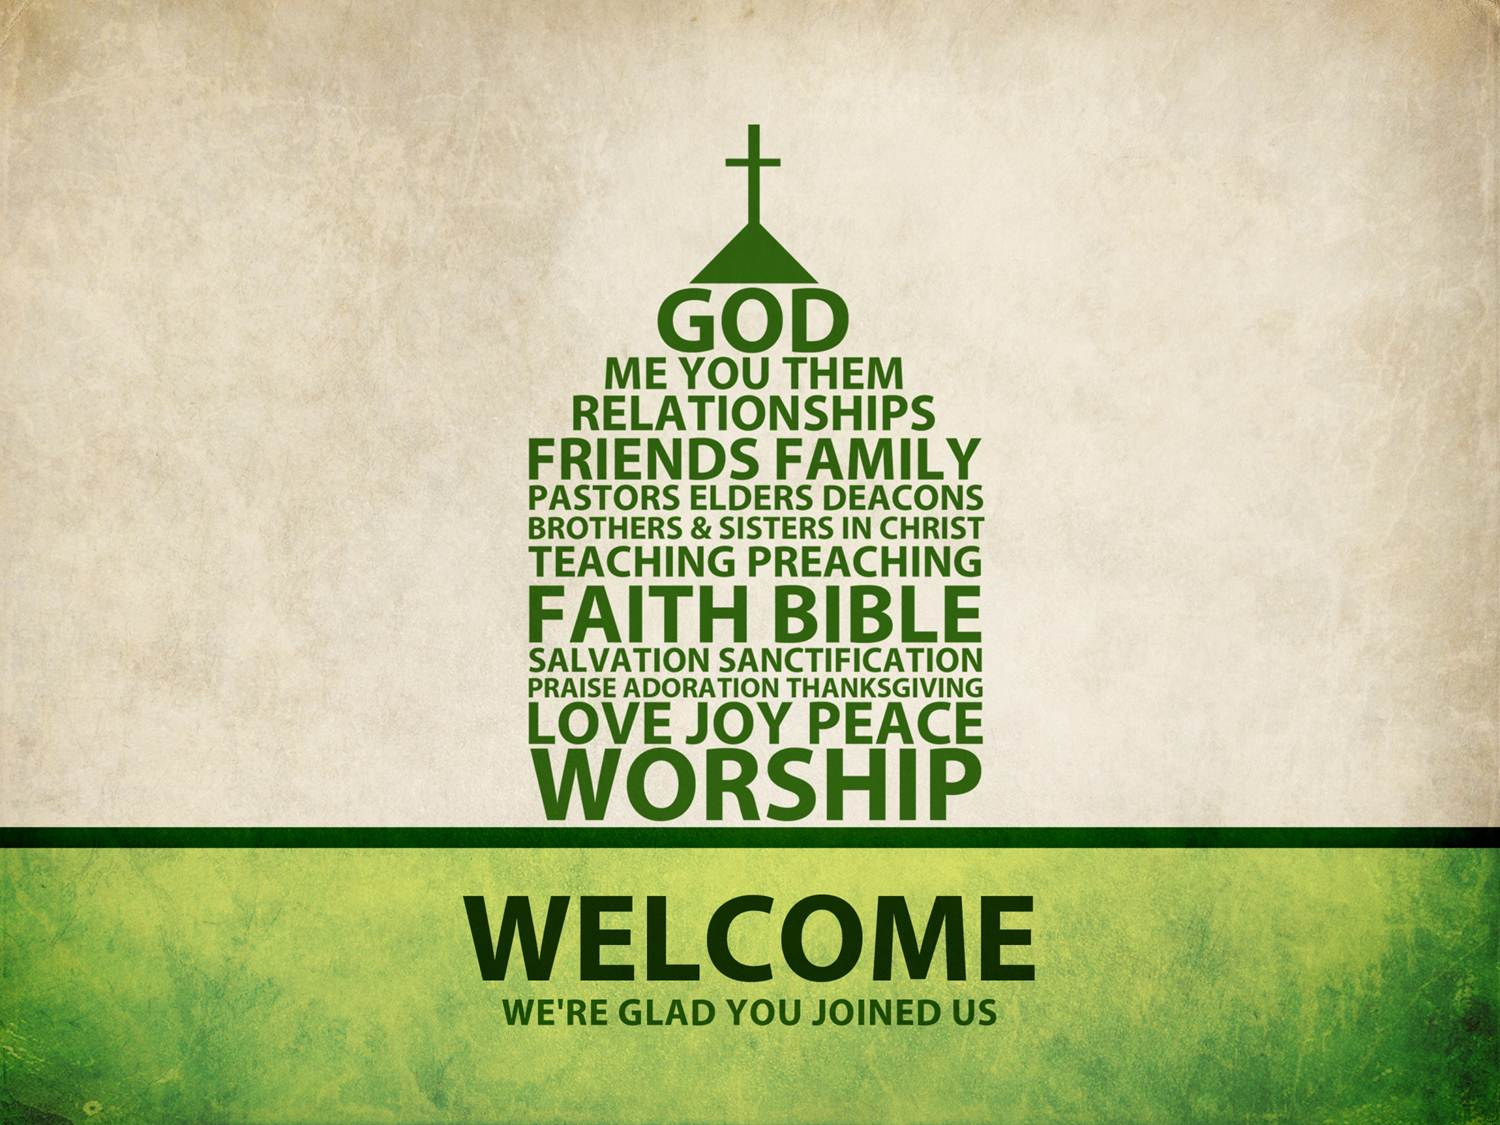 welcome church service worship members clipart powerpoint god glad pastor clip friends sermon fellowship re background join sunday template warm